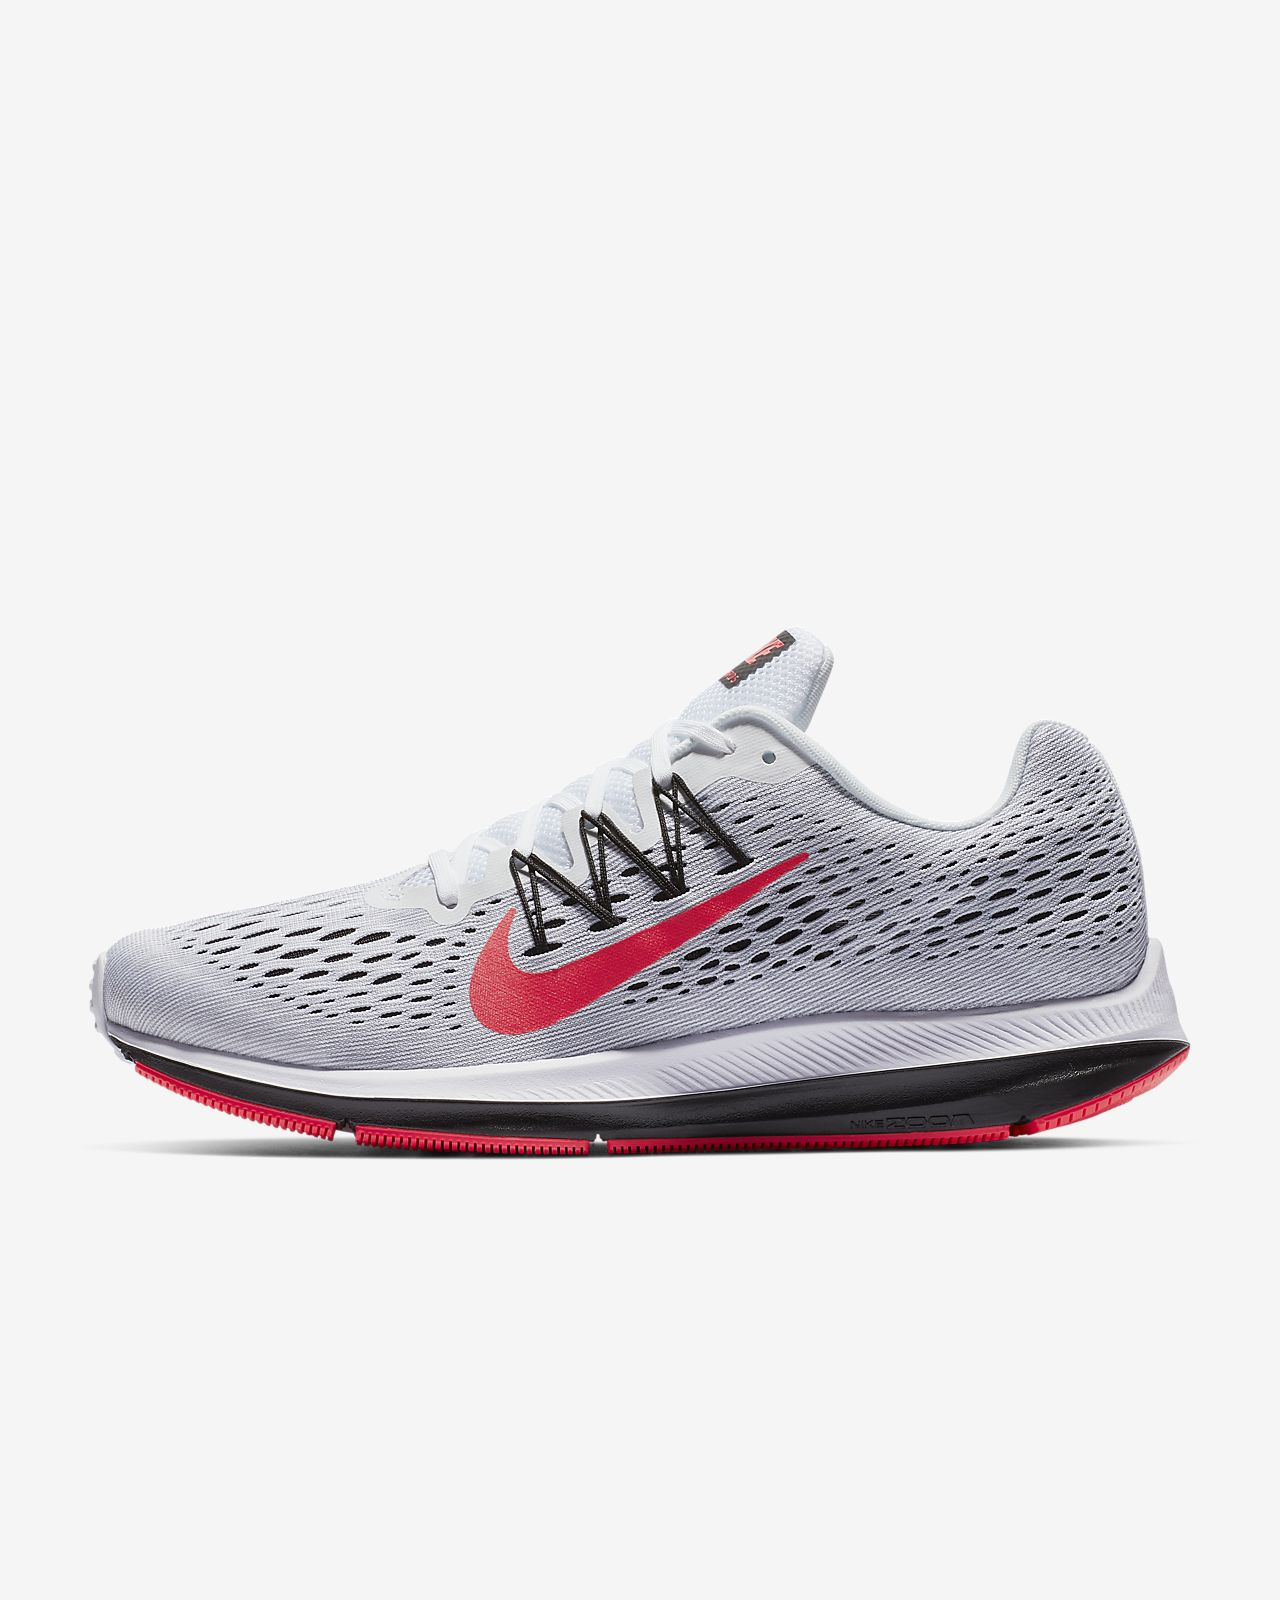 5067b659d7f6c0 Nike Air Zoom Winflo 5 Men s Running Shoe. Nike.com SG